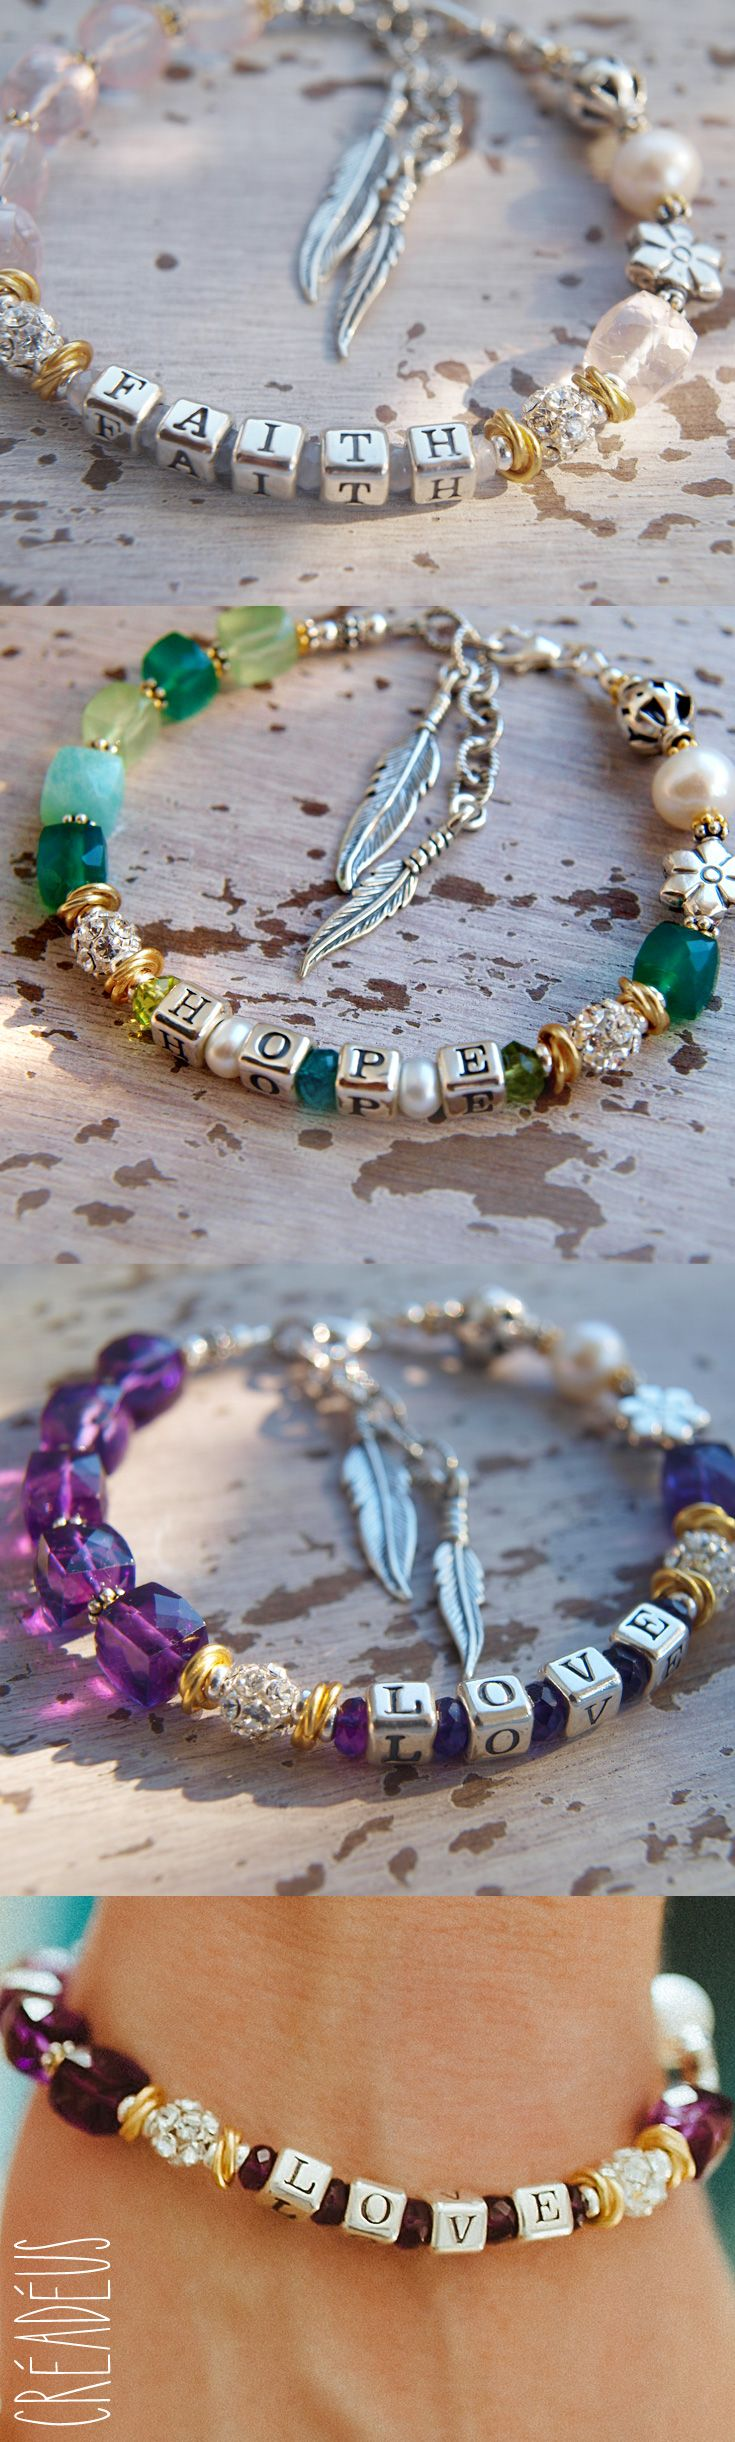 Gemstone Bracelet 'FAITH HOPE LOVE' with Letter Beads 925 Sterling Silver - Customizable - Creadeus Unique Jewelry Handmade in Germany